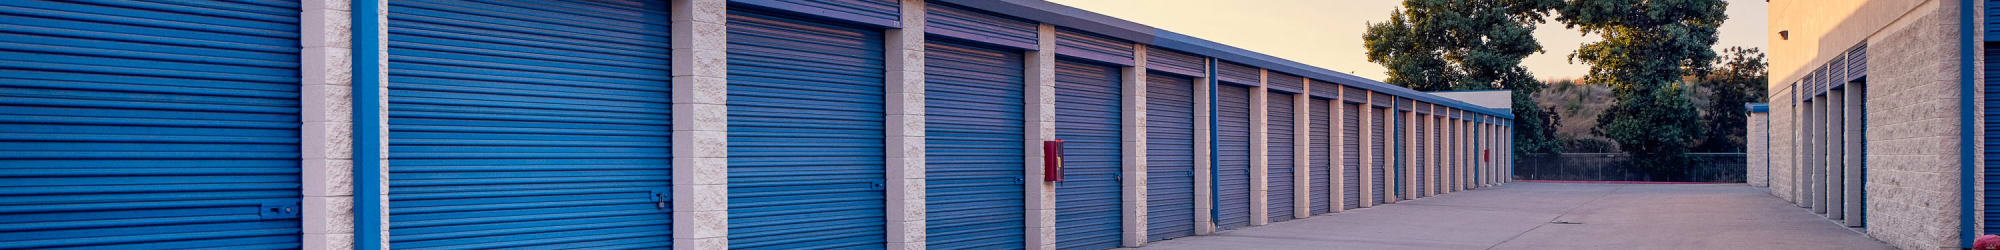 Hours and directions to Stor'em Self Storage in Chula Vista, California